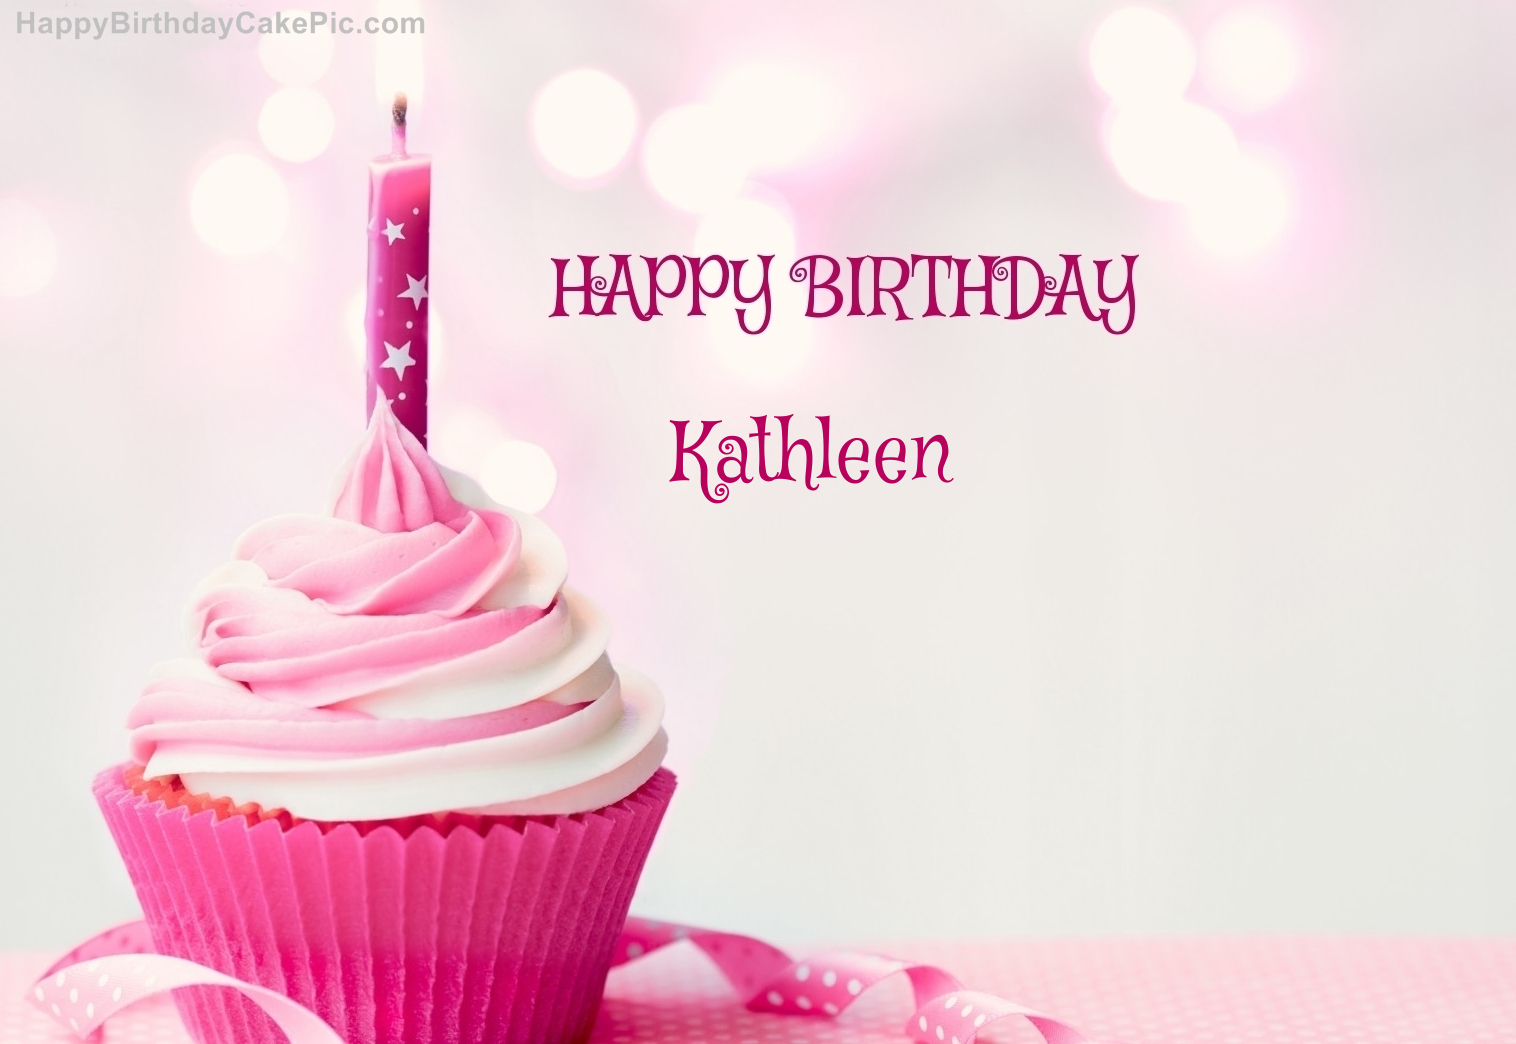 Image result for happy birthday kathleen